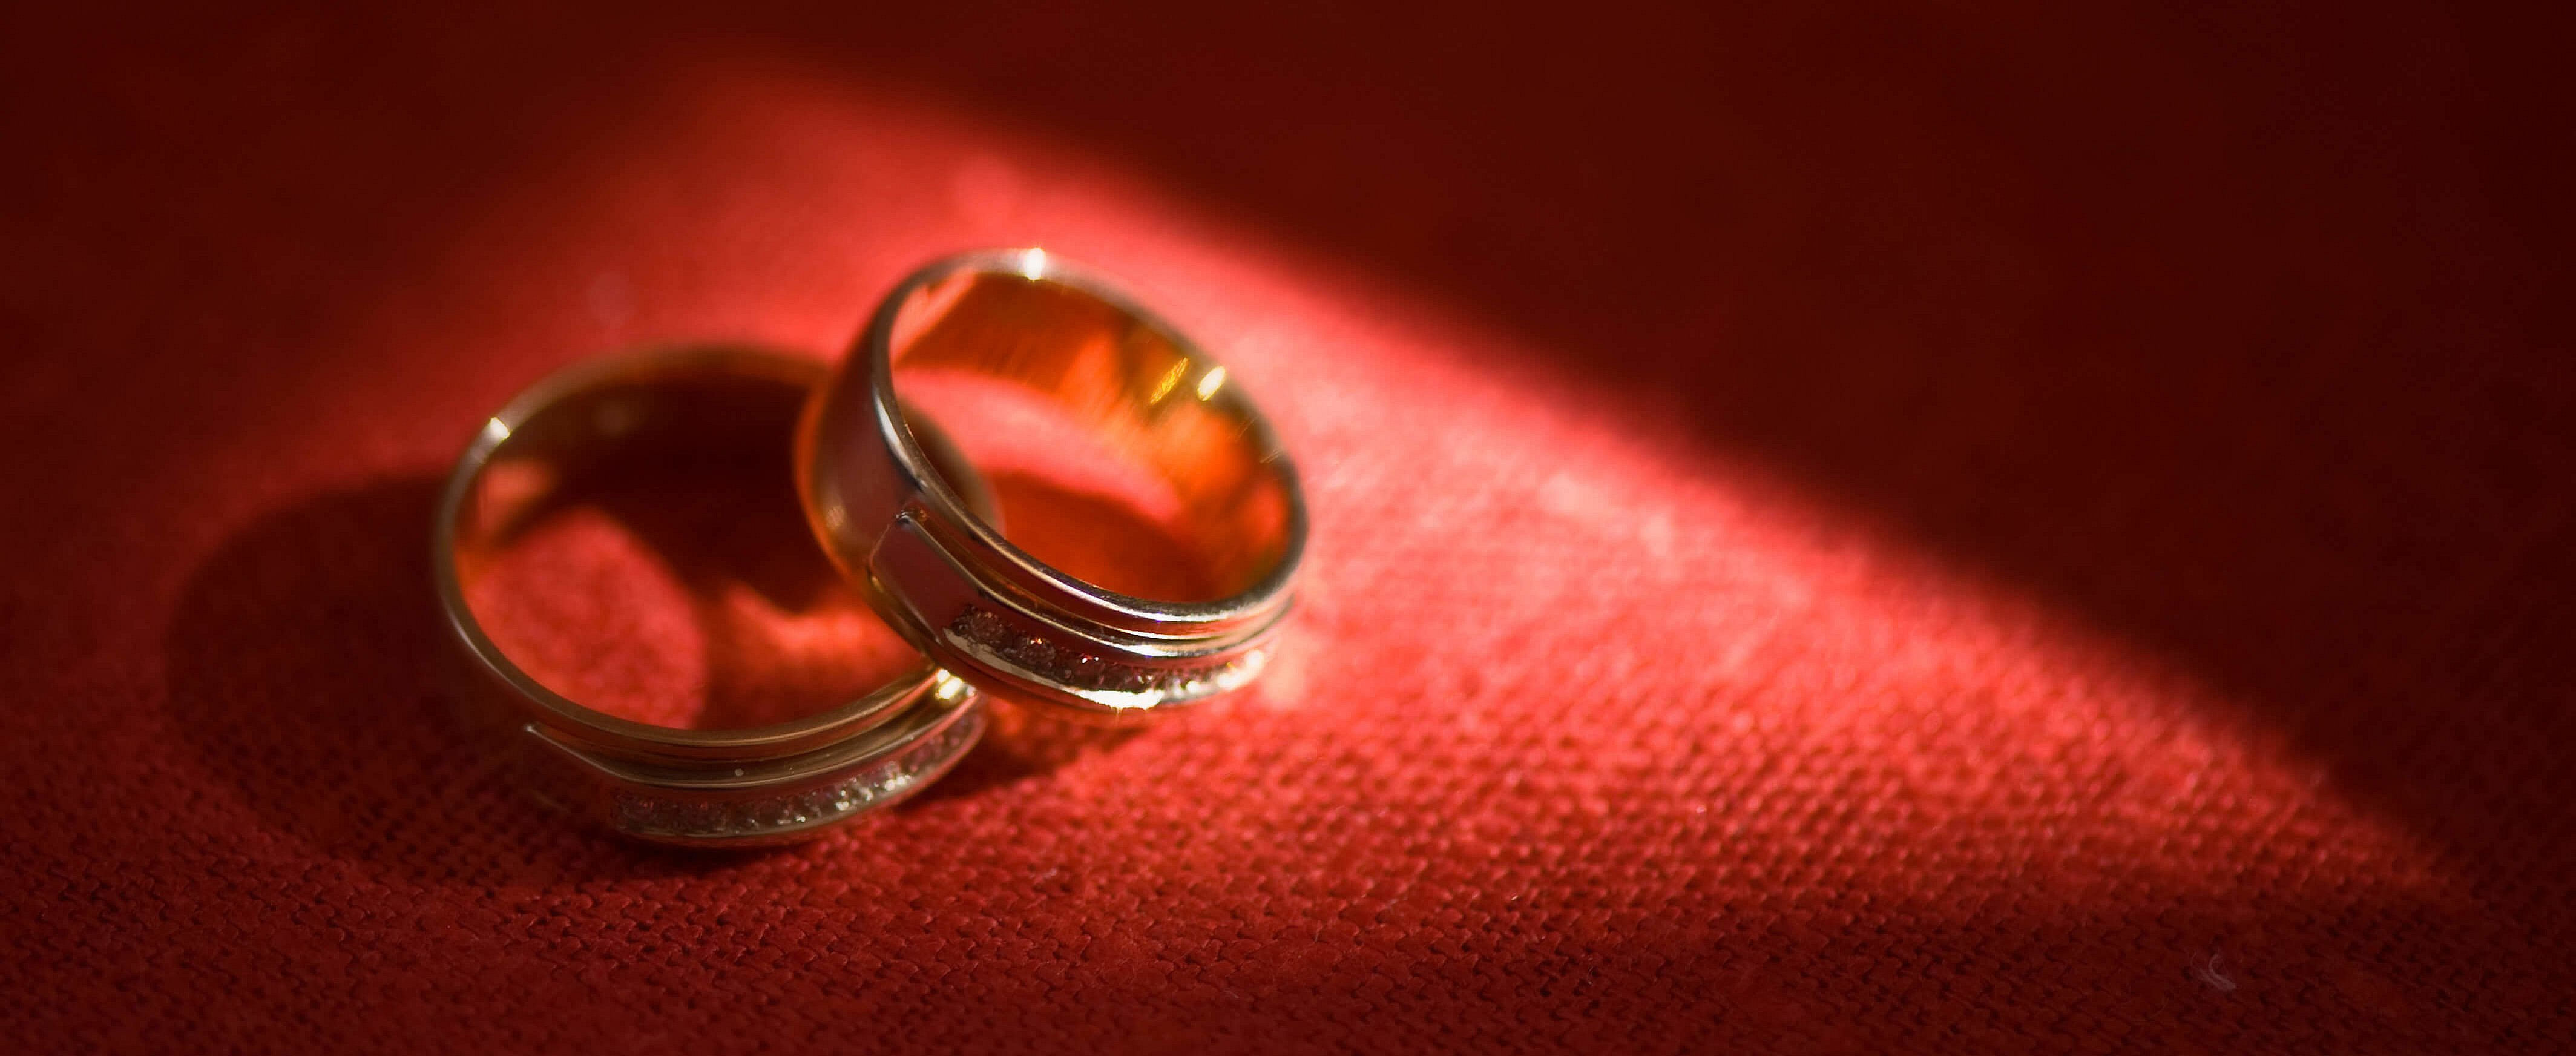 close-up wedding rings